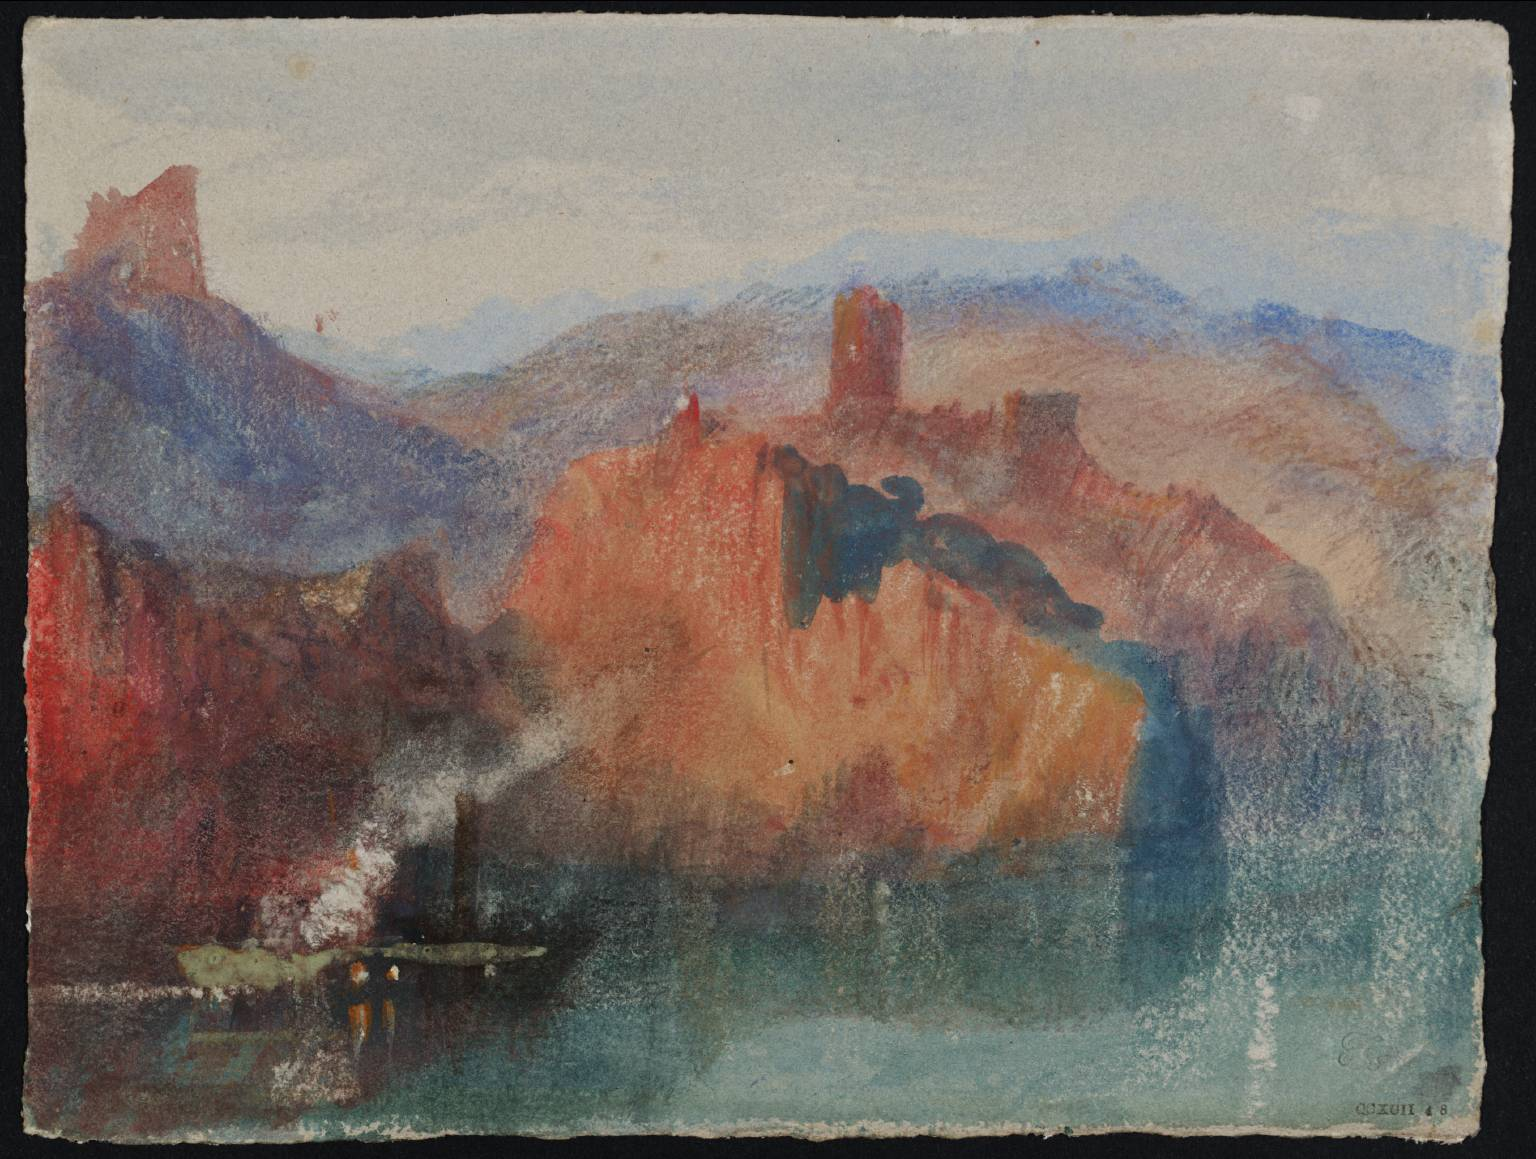 Fig. 1 : Lake Scene, with Mountains, circa 1834 Joseph Mallord William Turner 1775-1851. Accepted by the nation as part of the Turner Bequest 1856, Gouache and watercolour on paper,140 x 185 mm © Tate gallery London, Photo © Tate CC-BY-NC-ND 3.0 (Unported). http://www.tate.org.uk/art/work/D28996